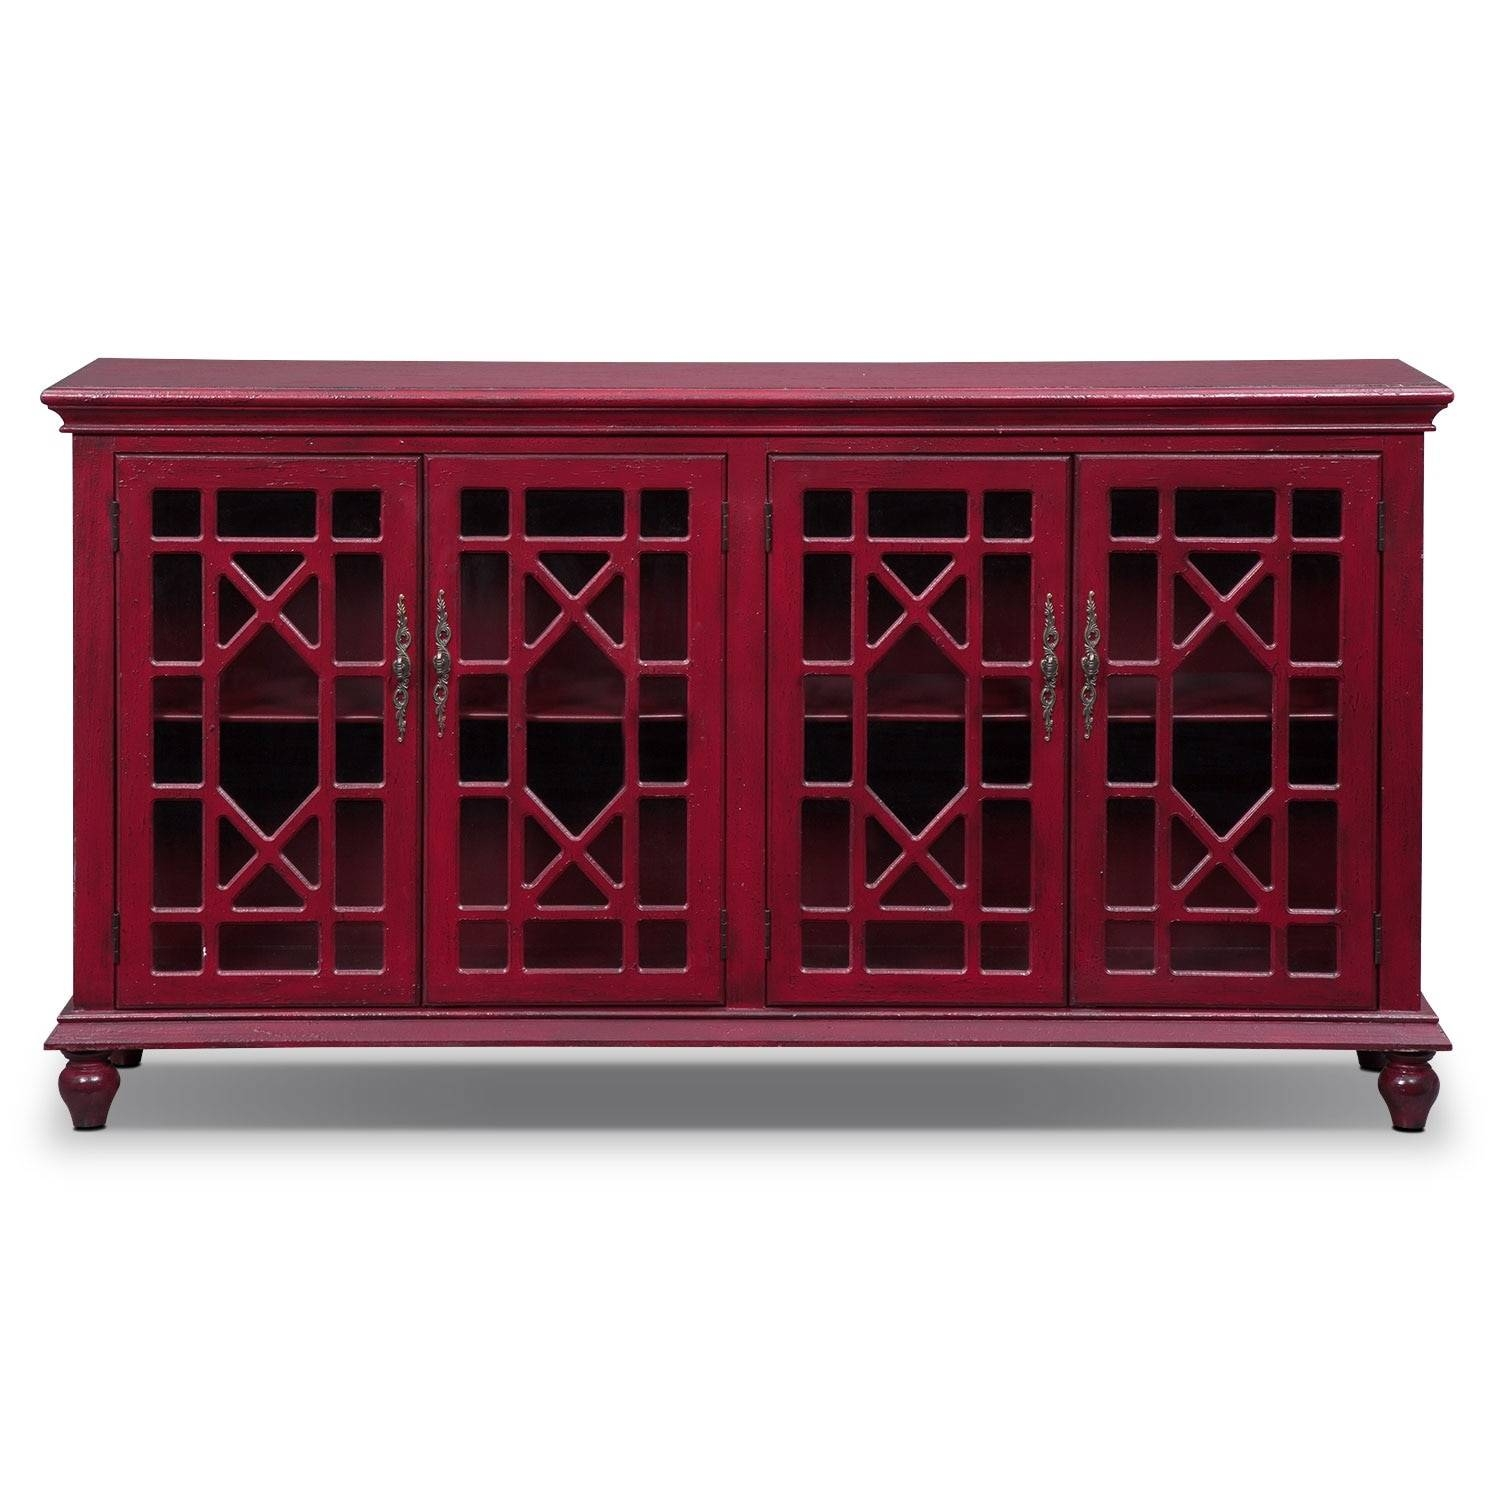 Grenoble Media Credenza - Red | Value City Furniture for Red Sideboards (Image 11 of 30)